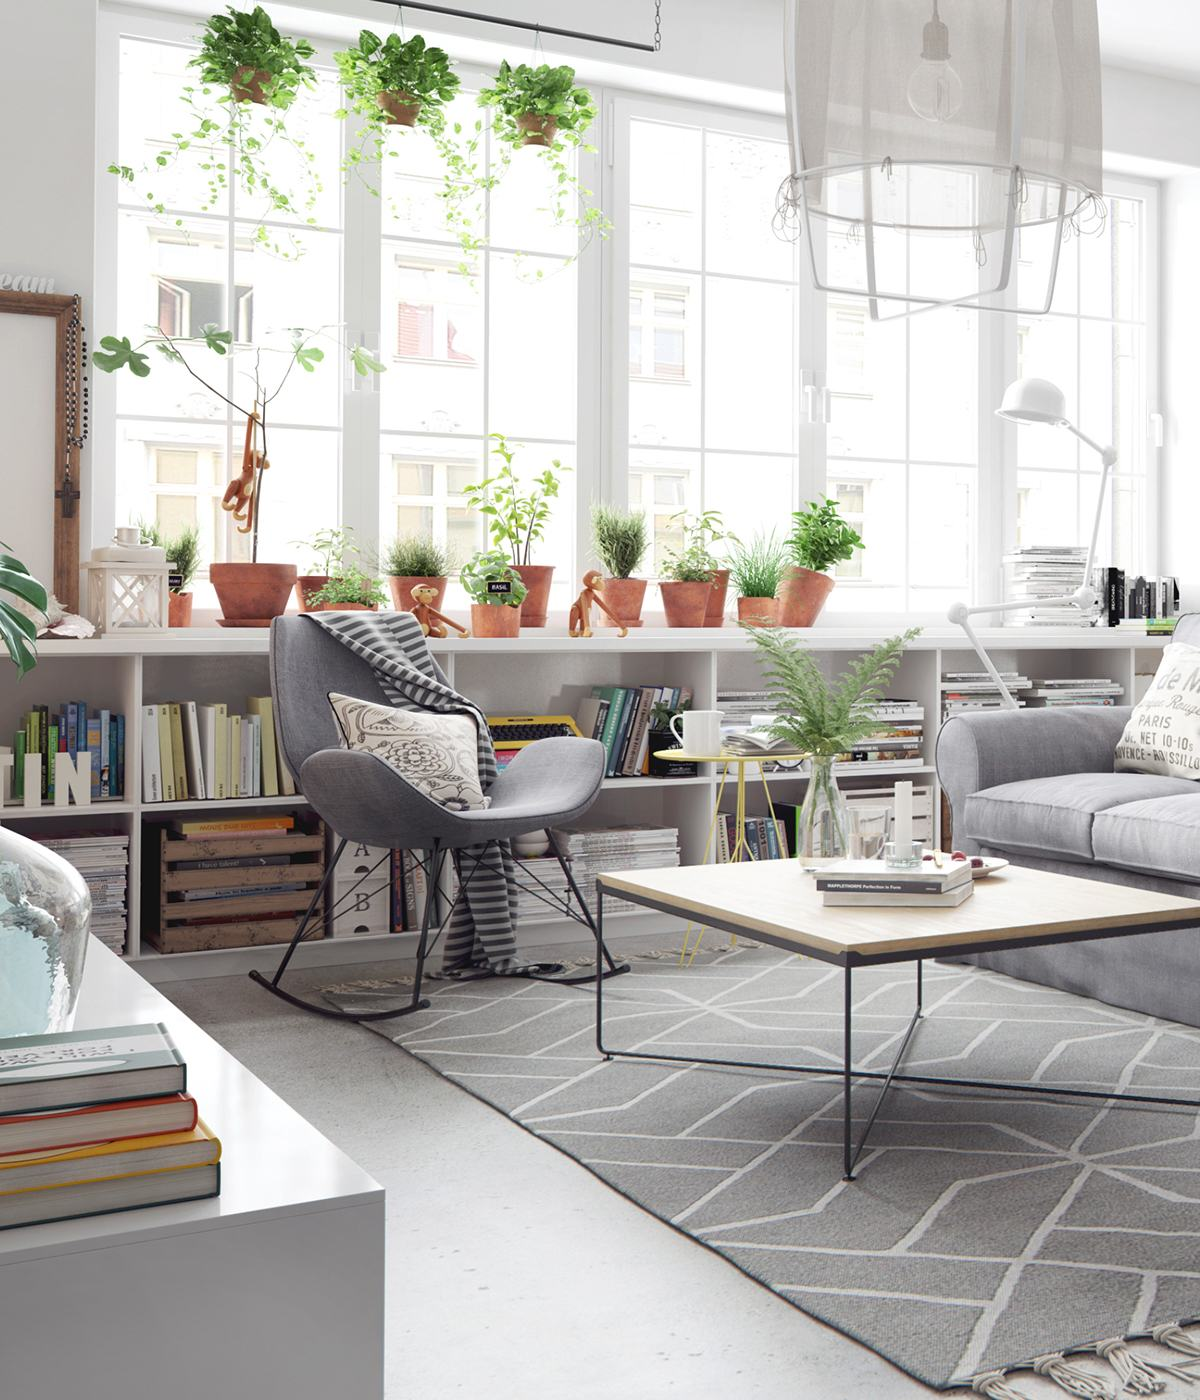 The Beauty Of Nordic Apartment Interior Design Style - RooHome on Apartment Decorating Styles  id=88712